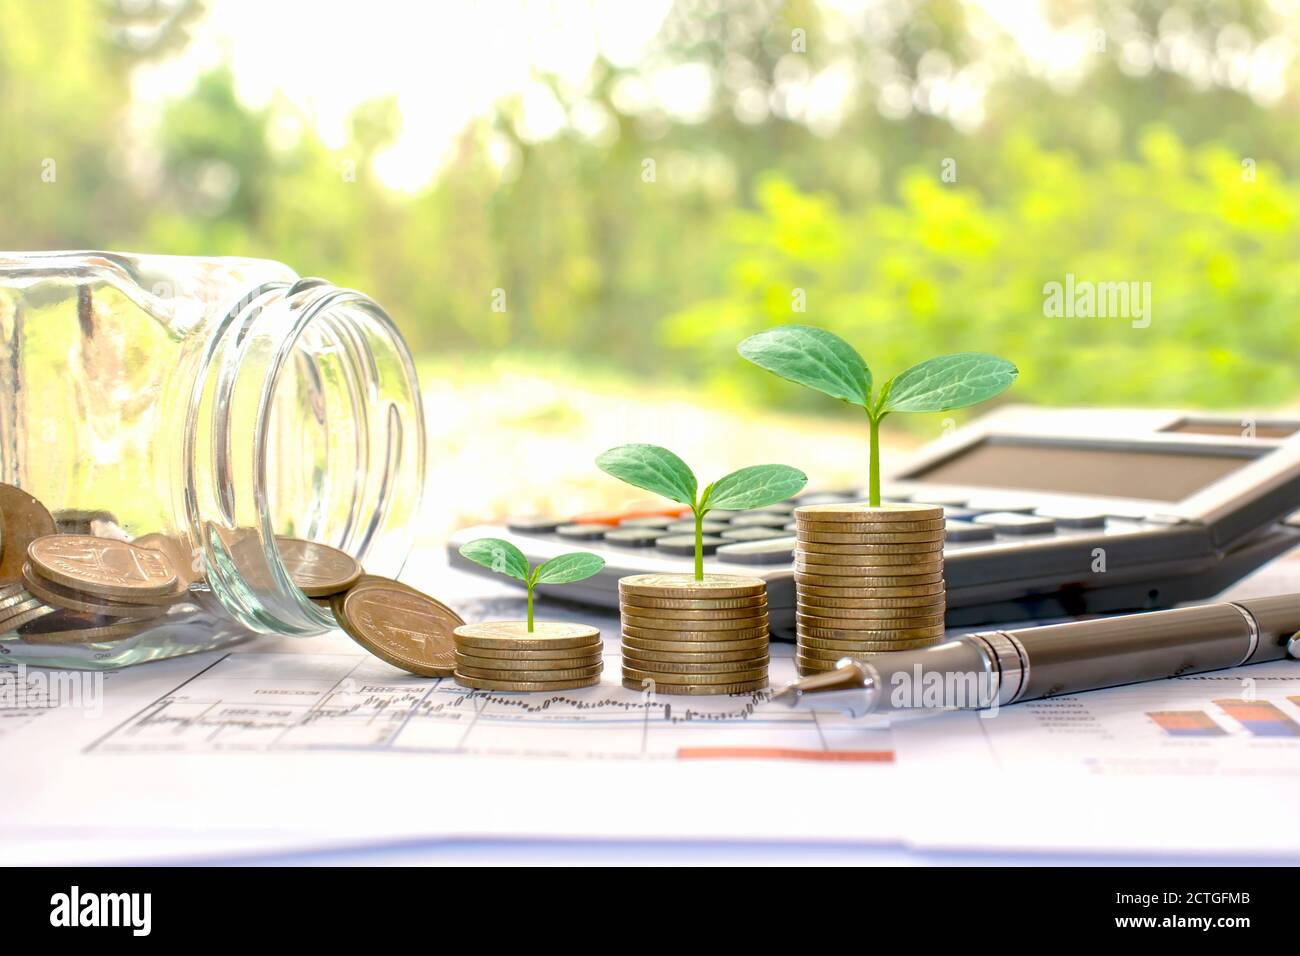 Plant small green trees on coins and calculators, financial accounting concepts and save money. Stock Photo